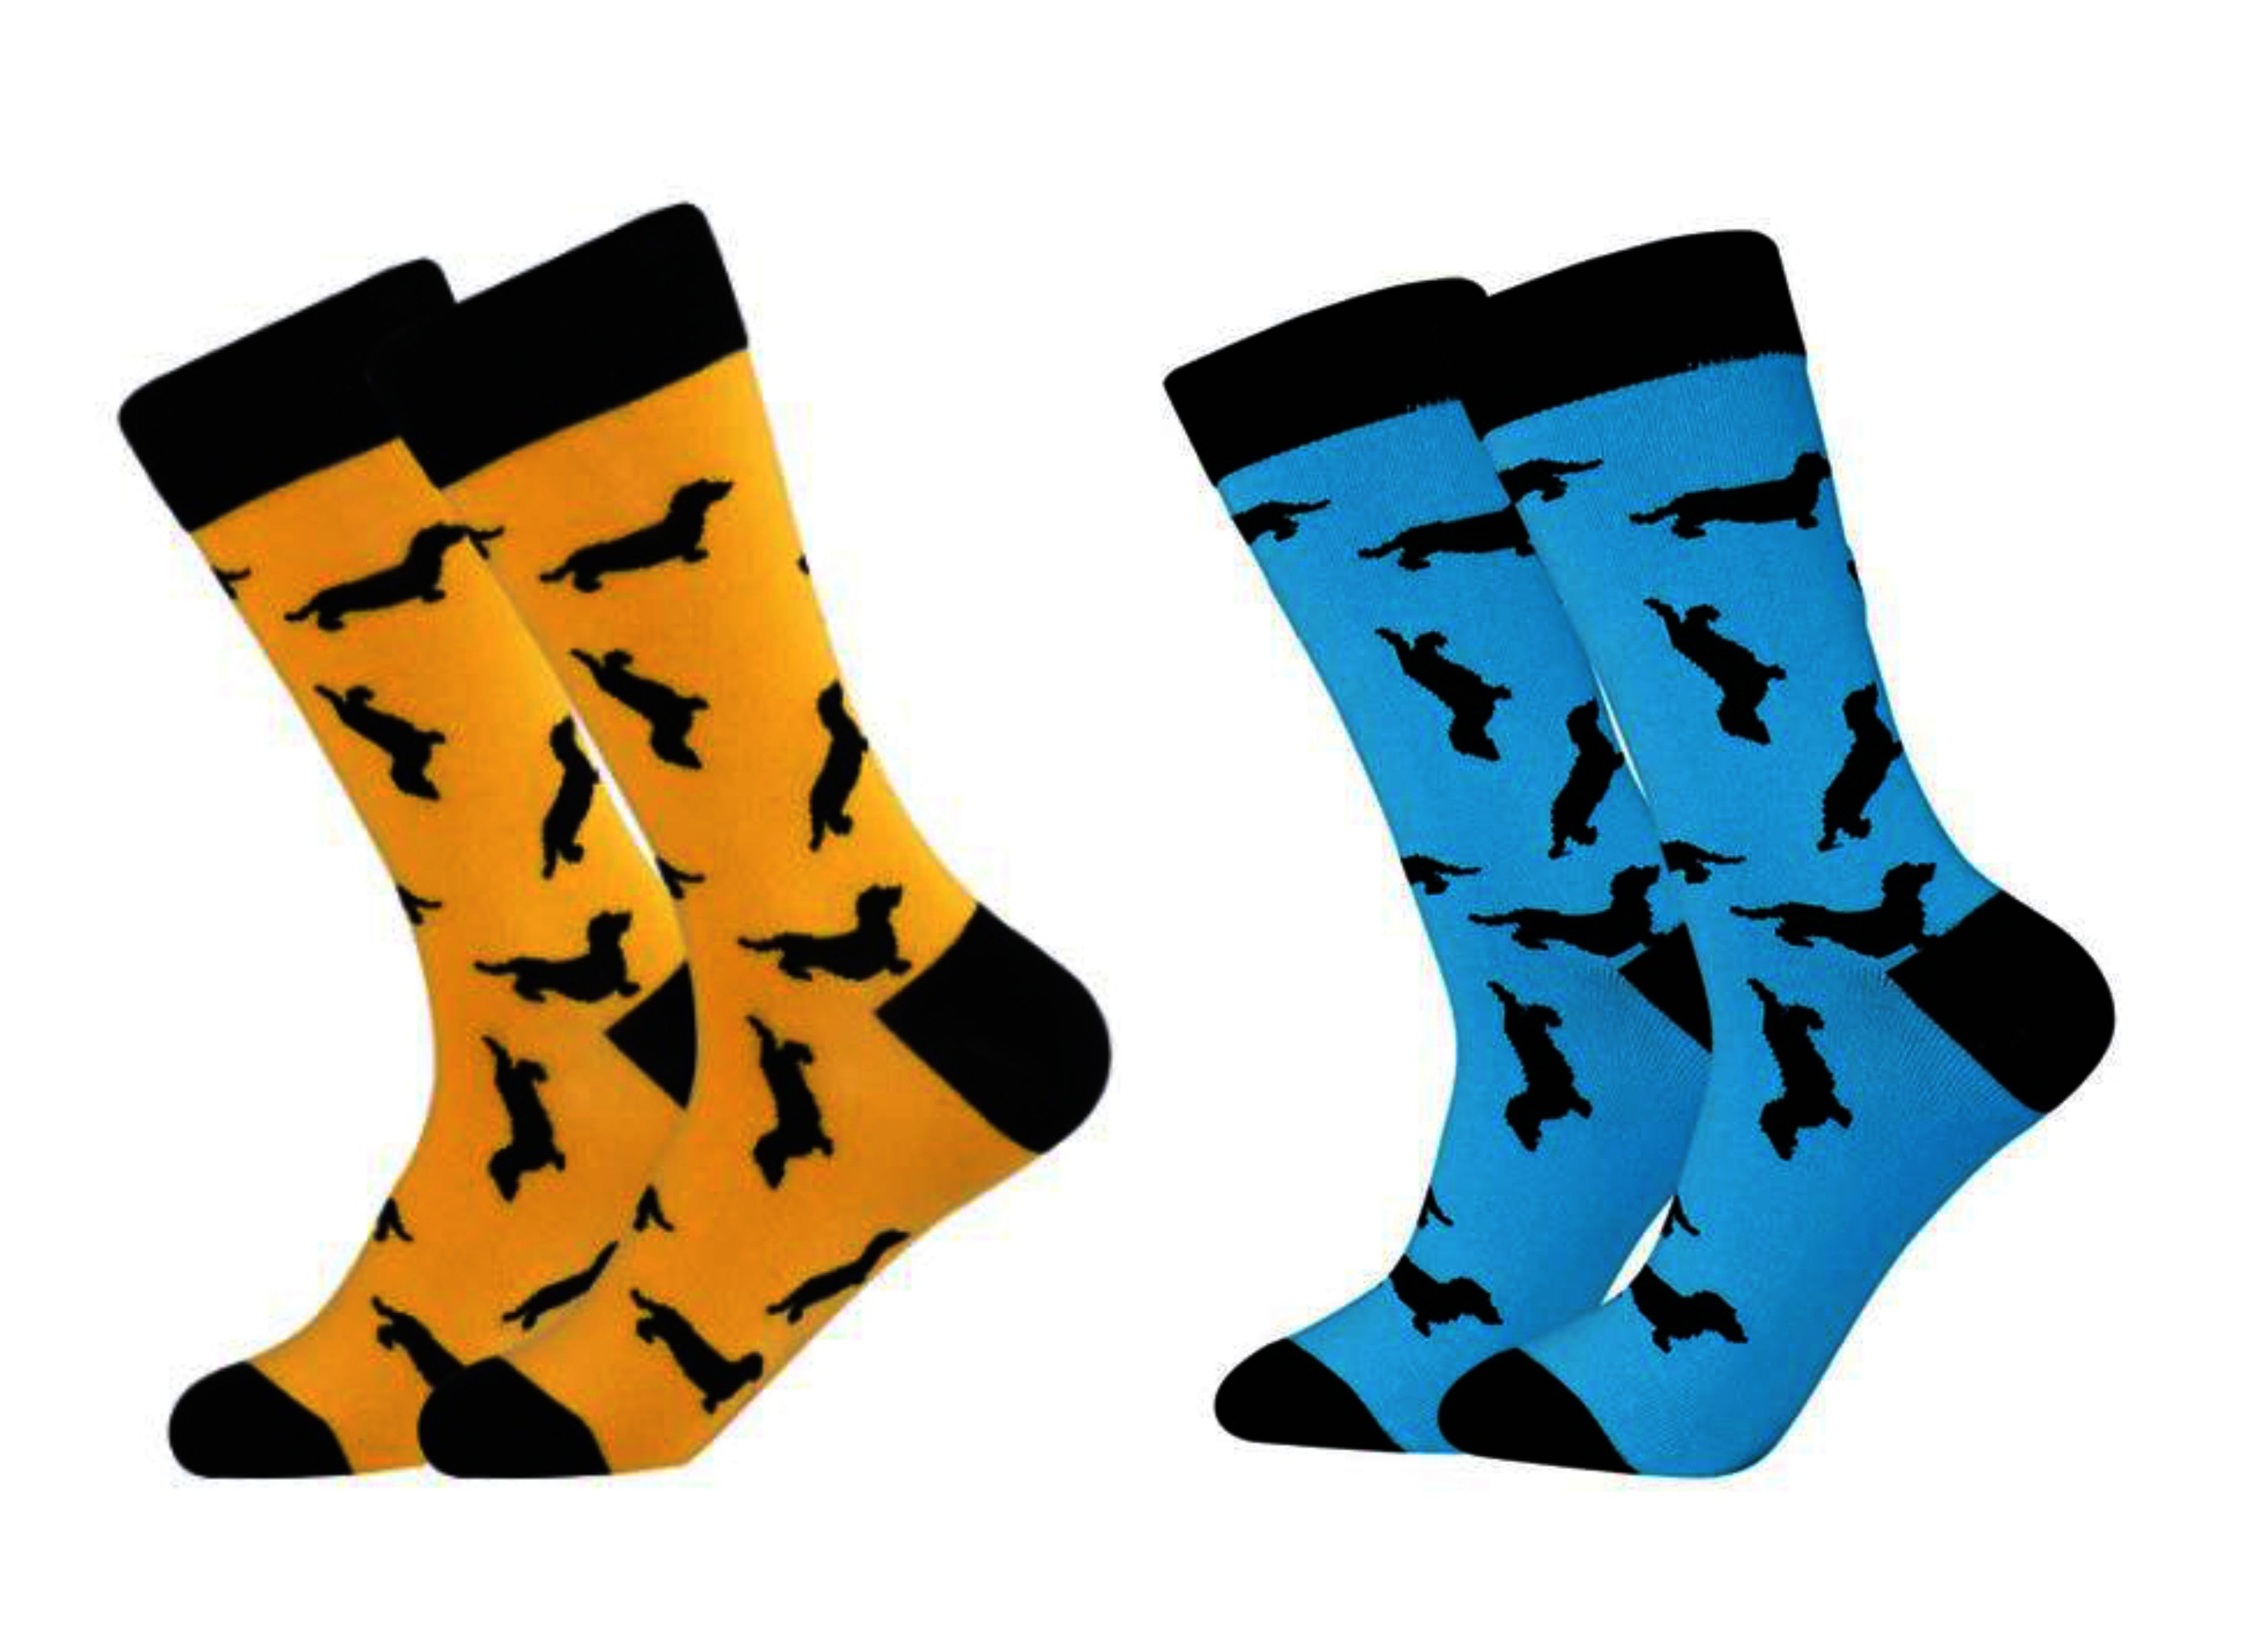 Dachshund Dog Socks. Dachshund Dog Black Print in Yellow socks and Blue socks.